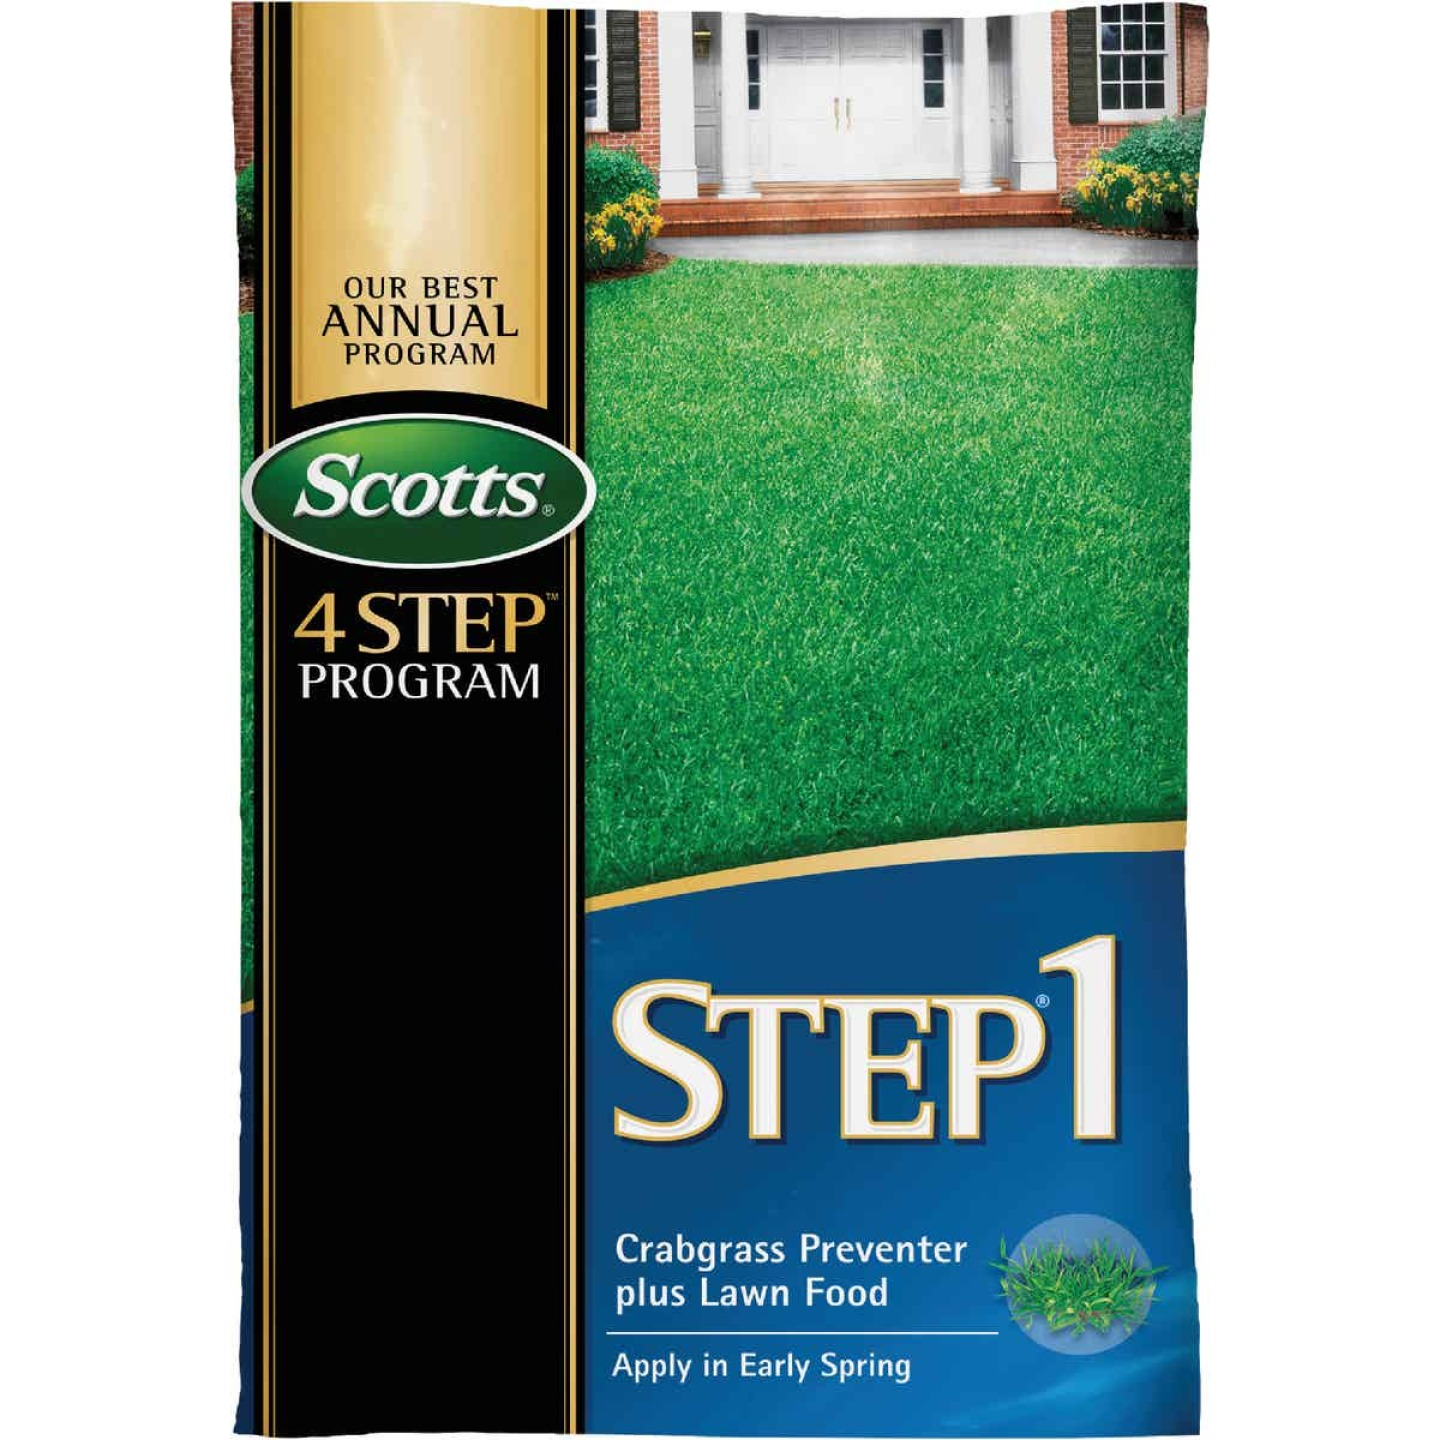 Scotts 4-Step Program Step 1 13.46 Lb. 5000 Sq. Ft. 28-0-7 Lawn Fertilizer with Crabgrass Preventer Image 1